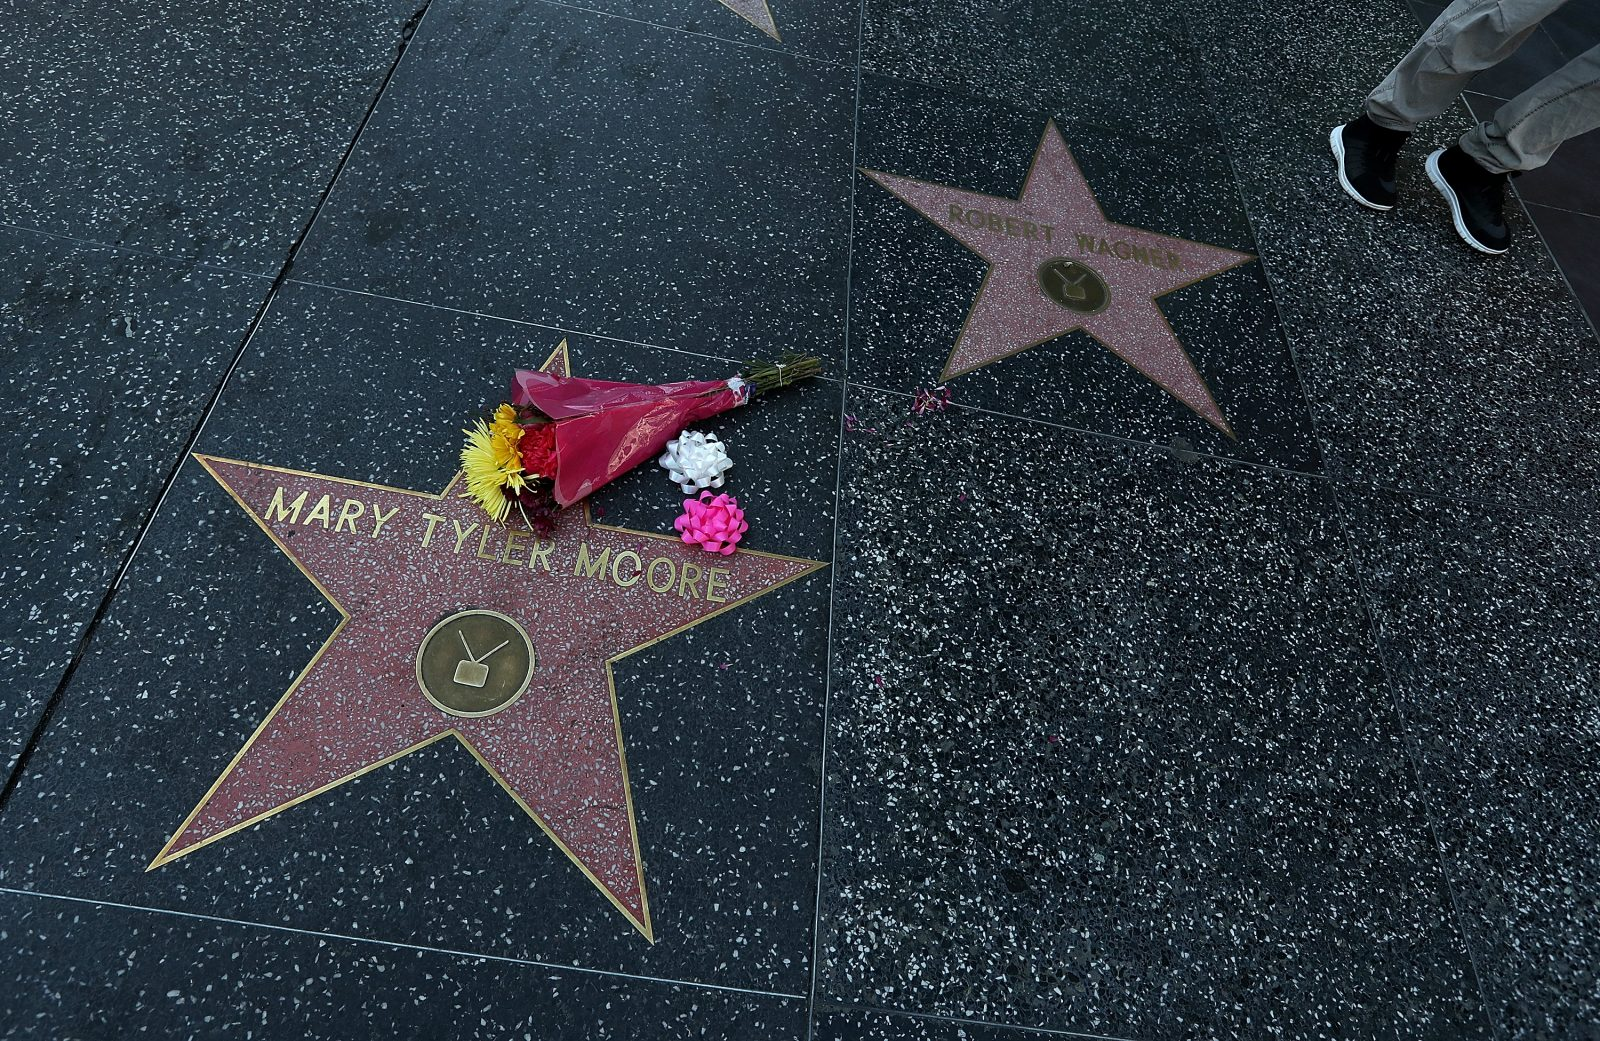 Flowers sit on actress Mary Tyler Moore's Hollywood Walk of Fame star on Wednesday in Hollywooda. Moore died on Wednesday. She was 80 years old. (Justin Sullivan/Getty Images)